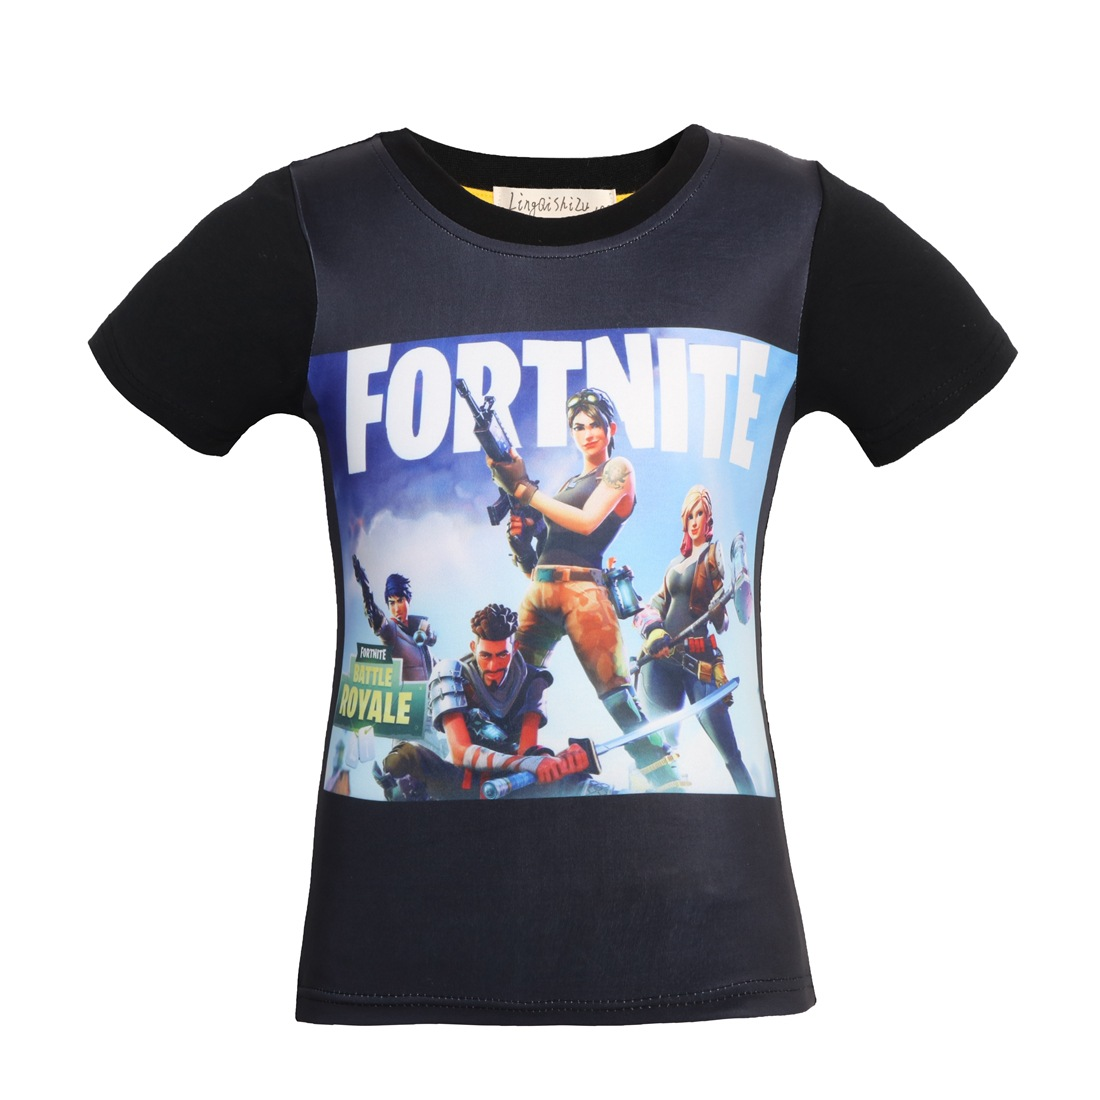 7b712bf1 Summer Boy Survival Game Fortress Cartoon T-Shirt Short Sleeve Print  Childrens T Shirt 100% Cotton Top Baby Girl Kids Clothing